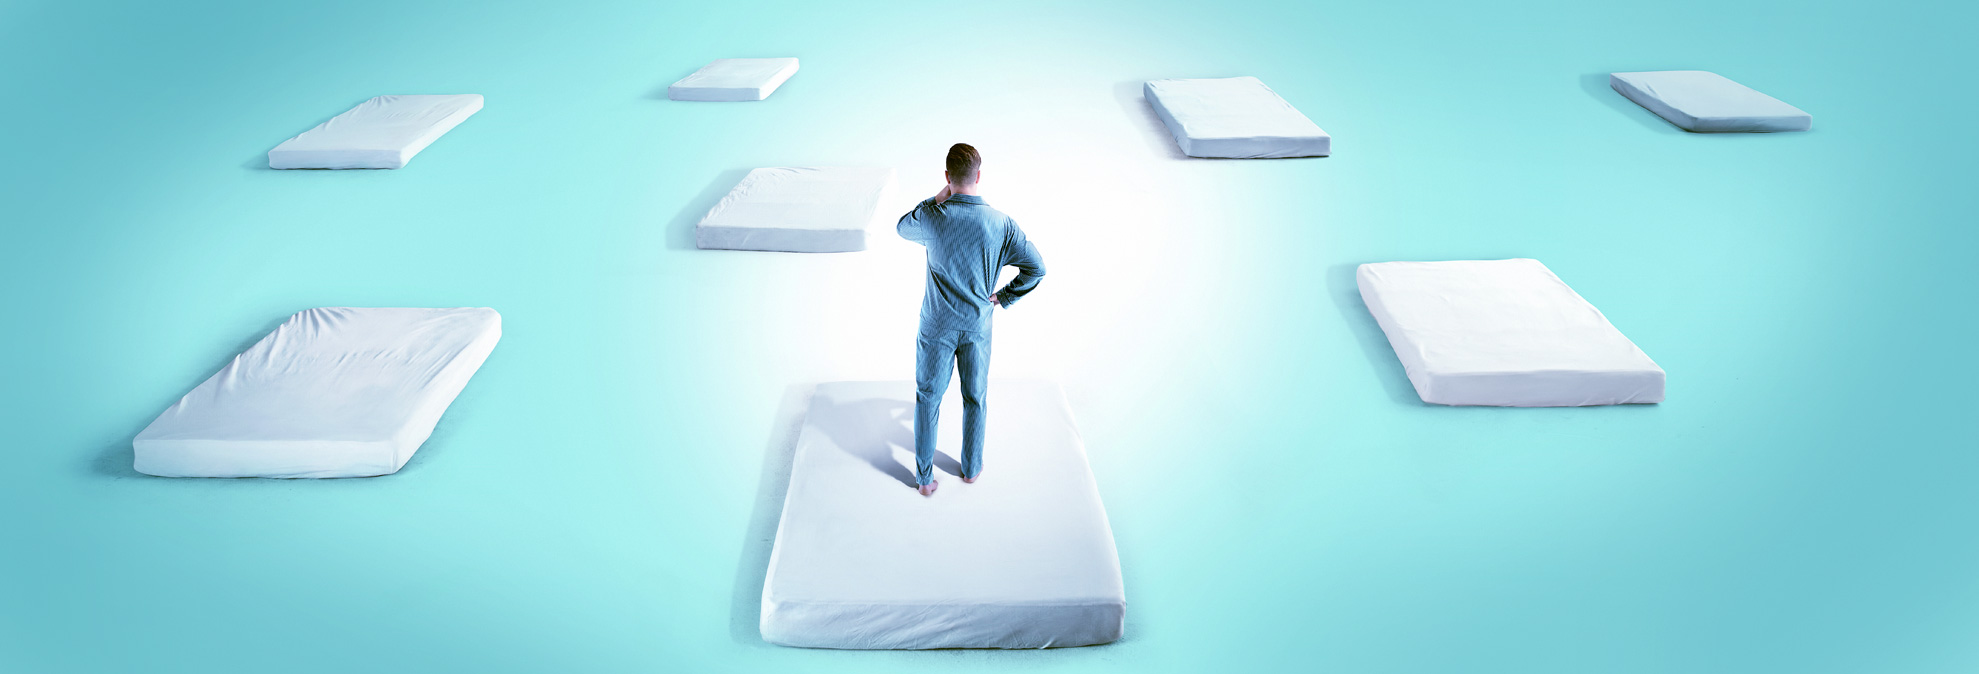 How Often Should I Change My Mattress 7 Ways To Buy A Better Mattress Consumer Reports